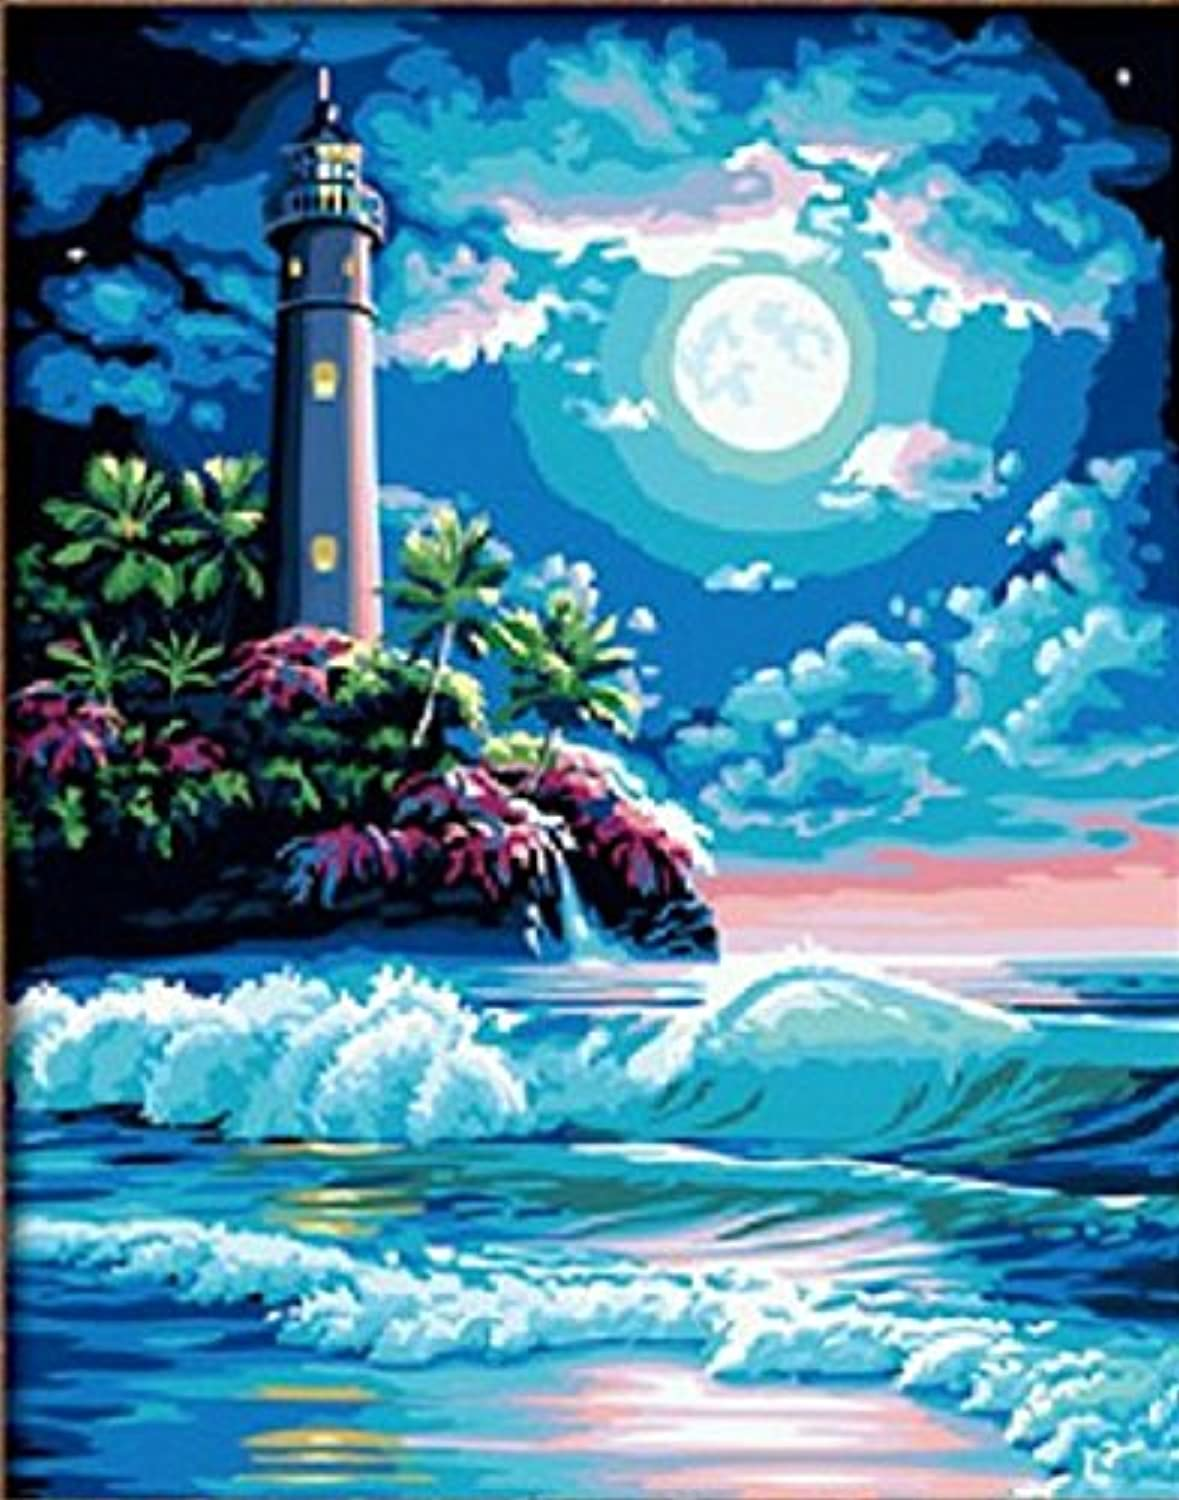 Lighthouse in Moonlight paint-diyペイント装飾ペイント16 x 20インチブルー夢ペイントby NumbersキットUniqueギフトDIY画像フレームレス Without wood frame 3638291